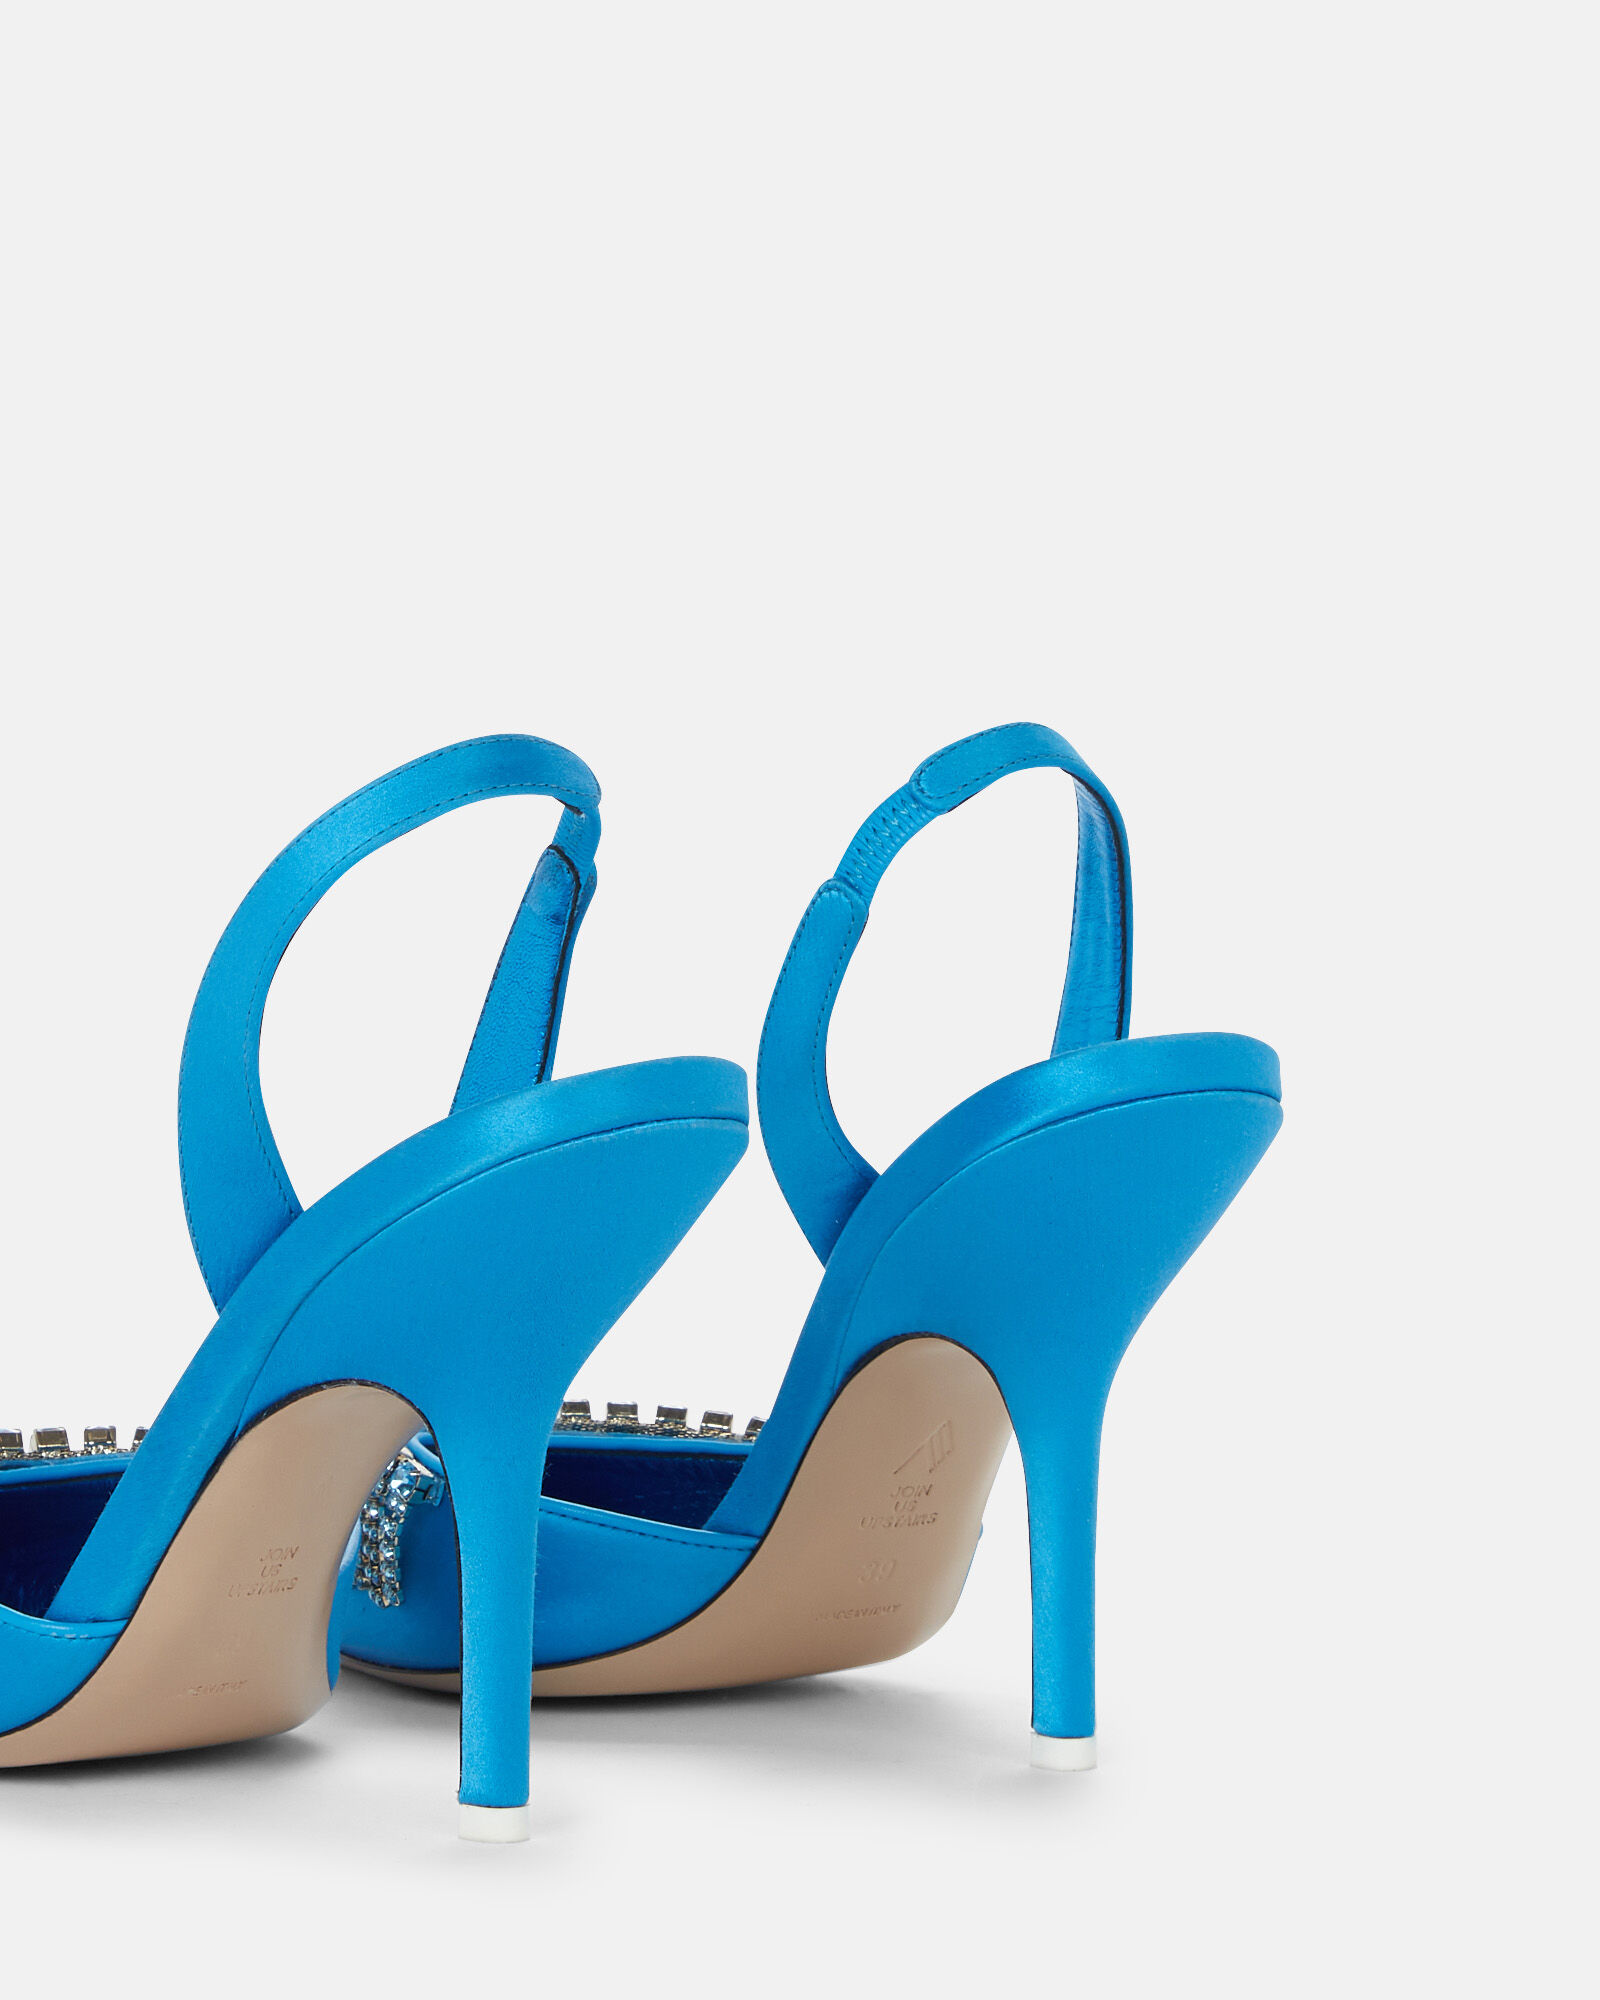 Crystal Fringe Satin Slingback Pumps, AQUA, hi-res